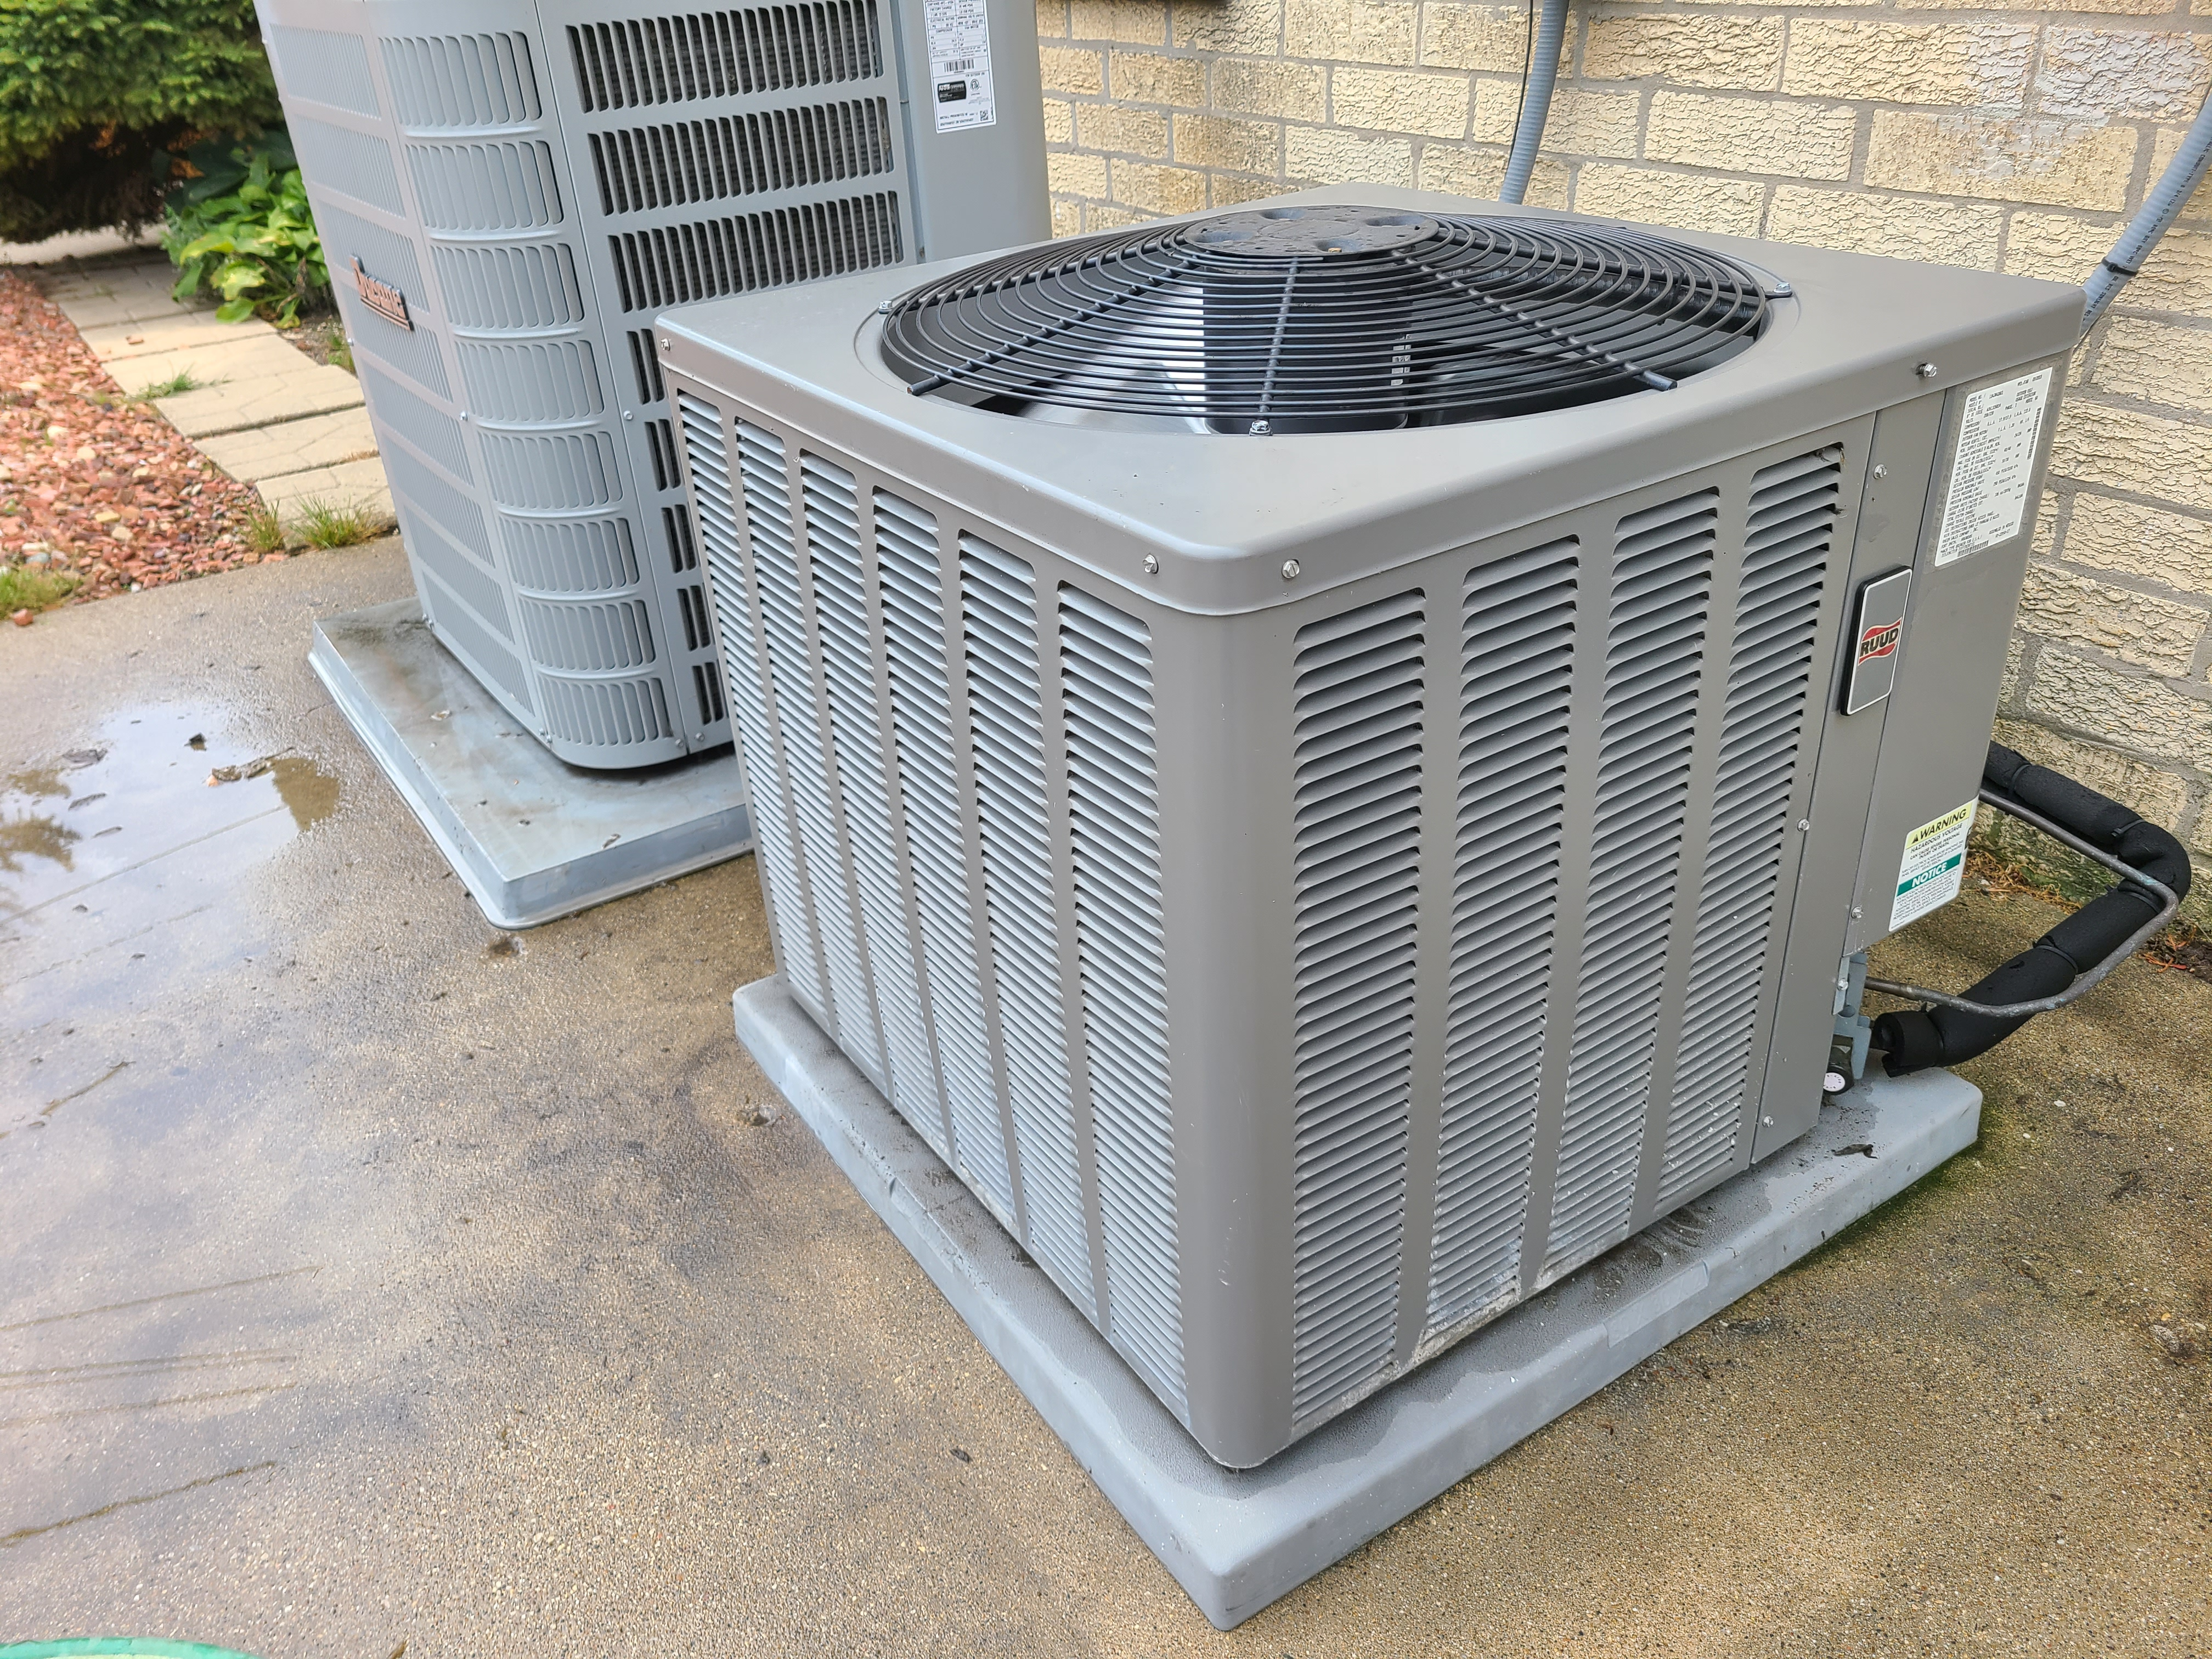 Photo of Duncan and ruud condenser after cts